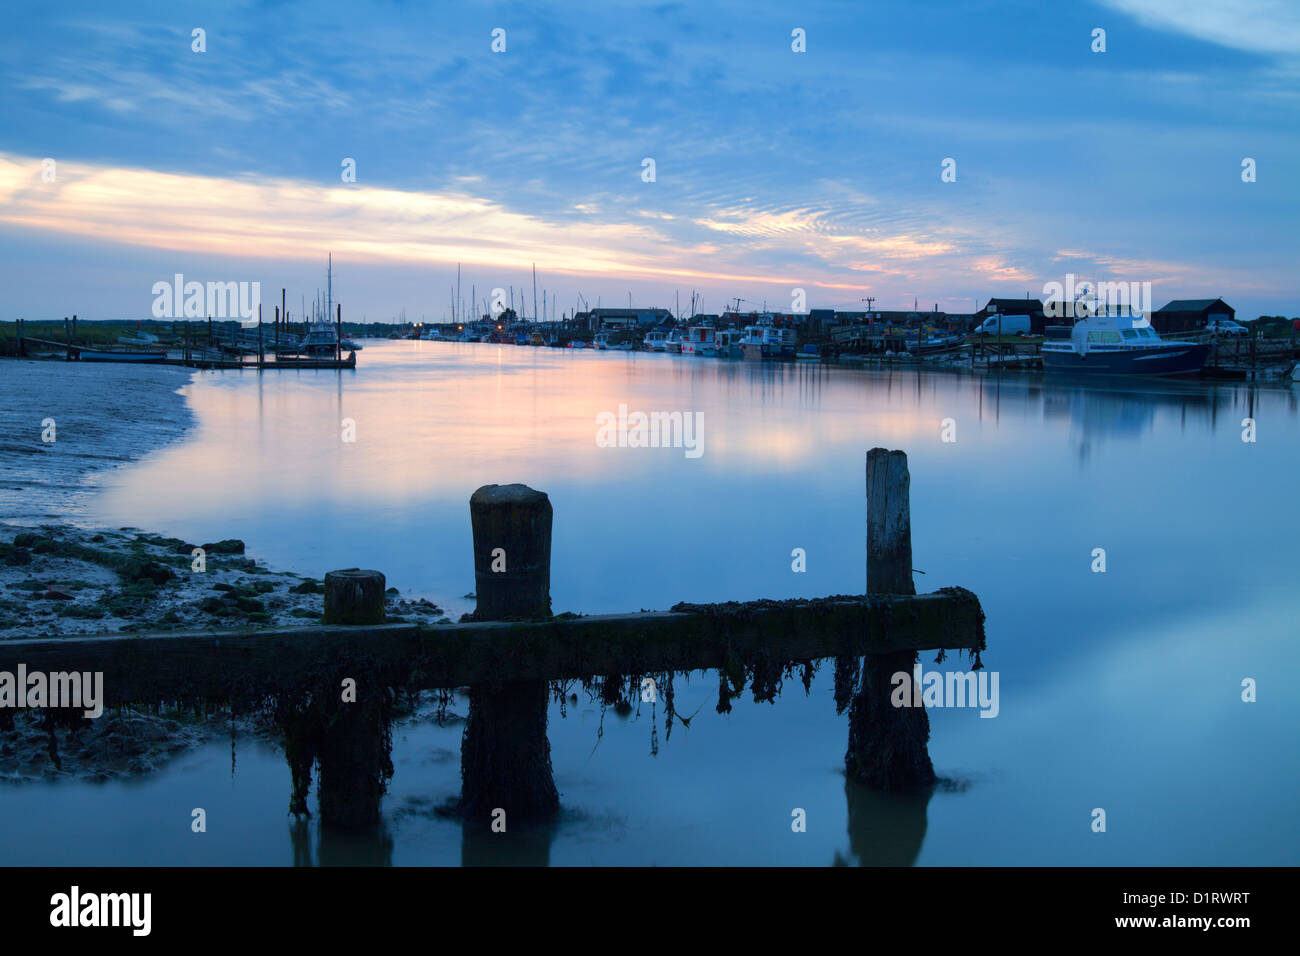 River Blyth, Walberswick sunset, Suffolk coast, Southwold, East Anglia, UK - Stock Image